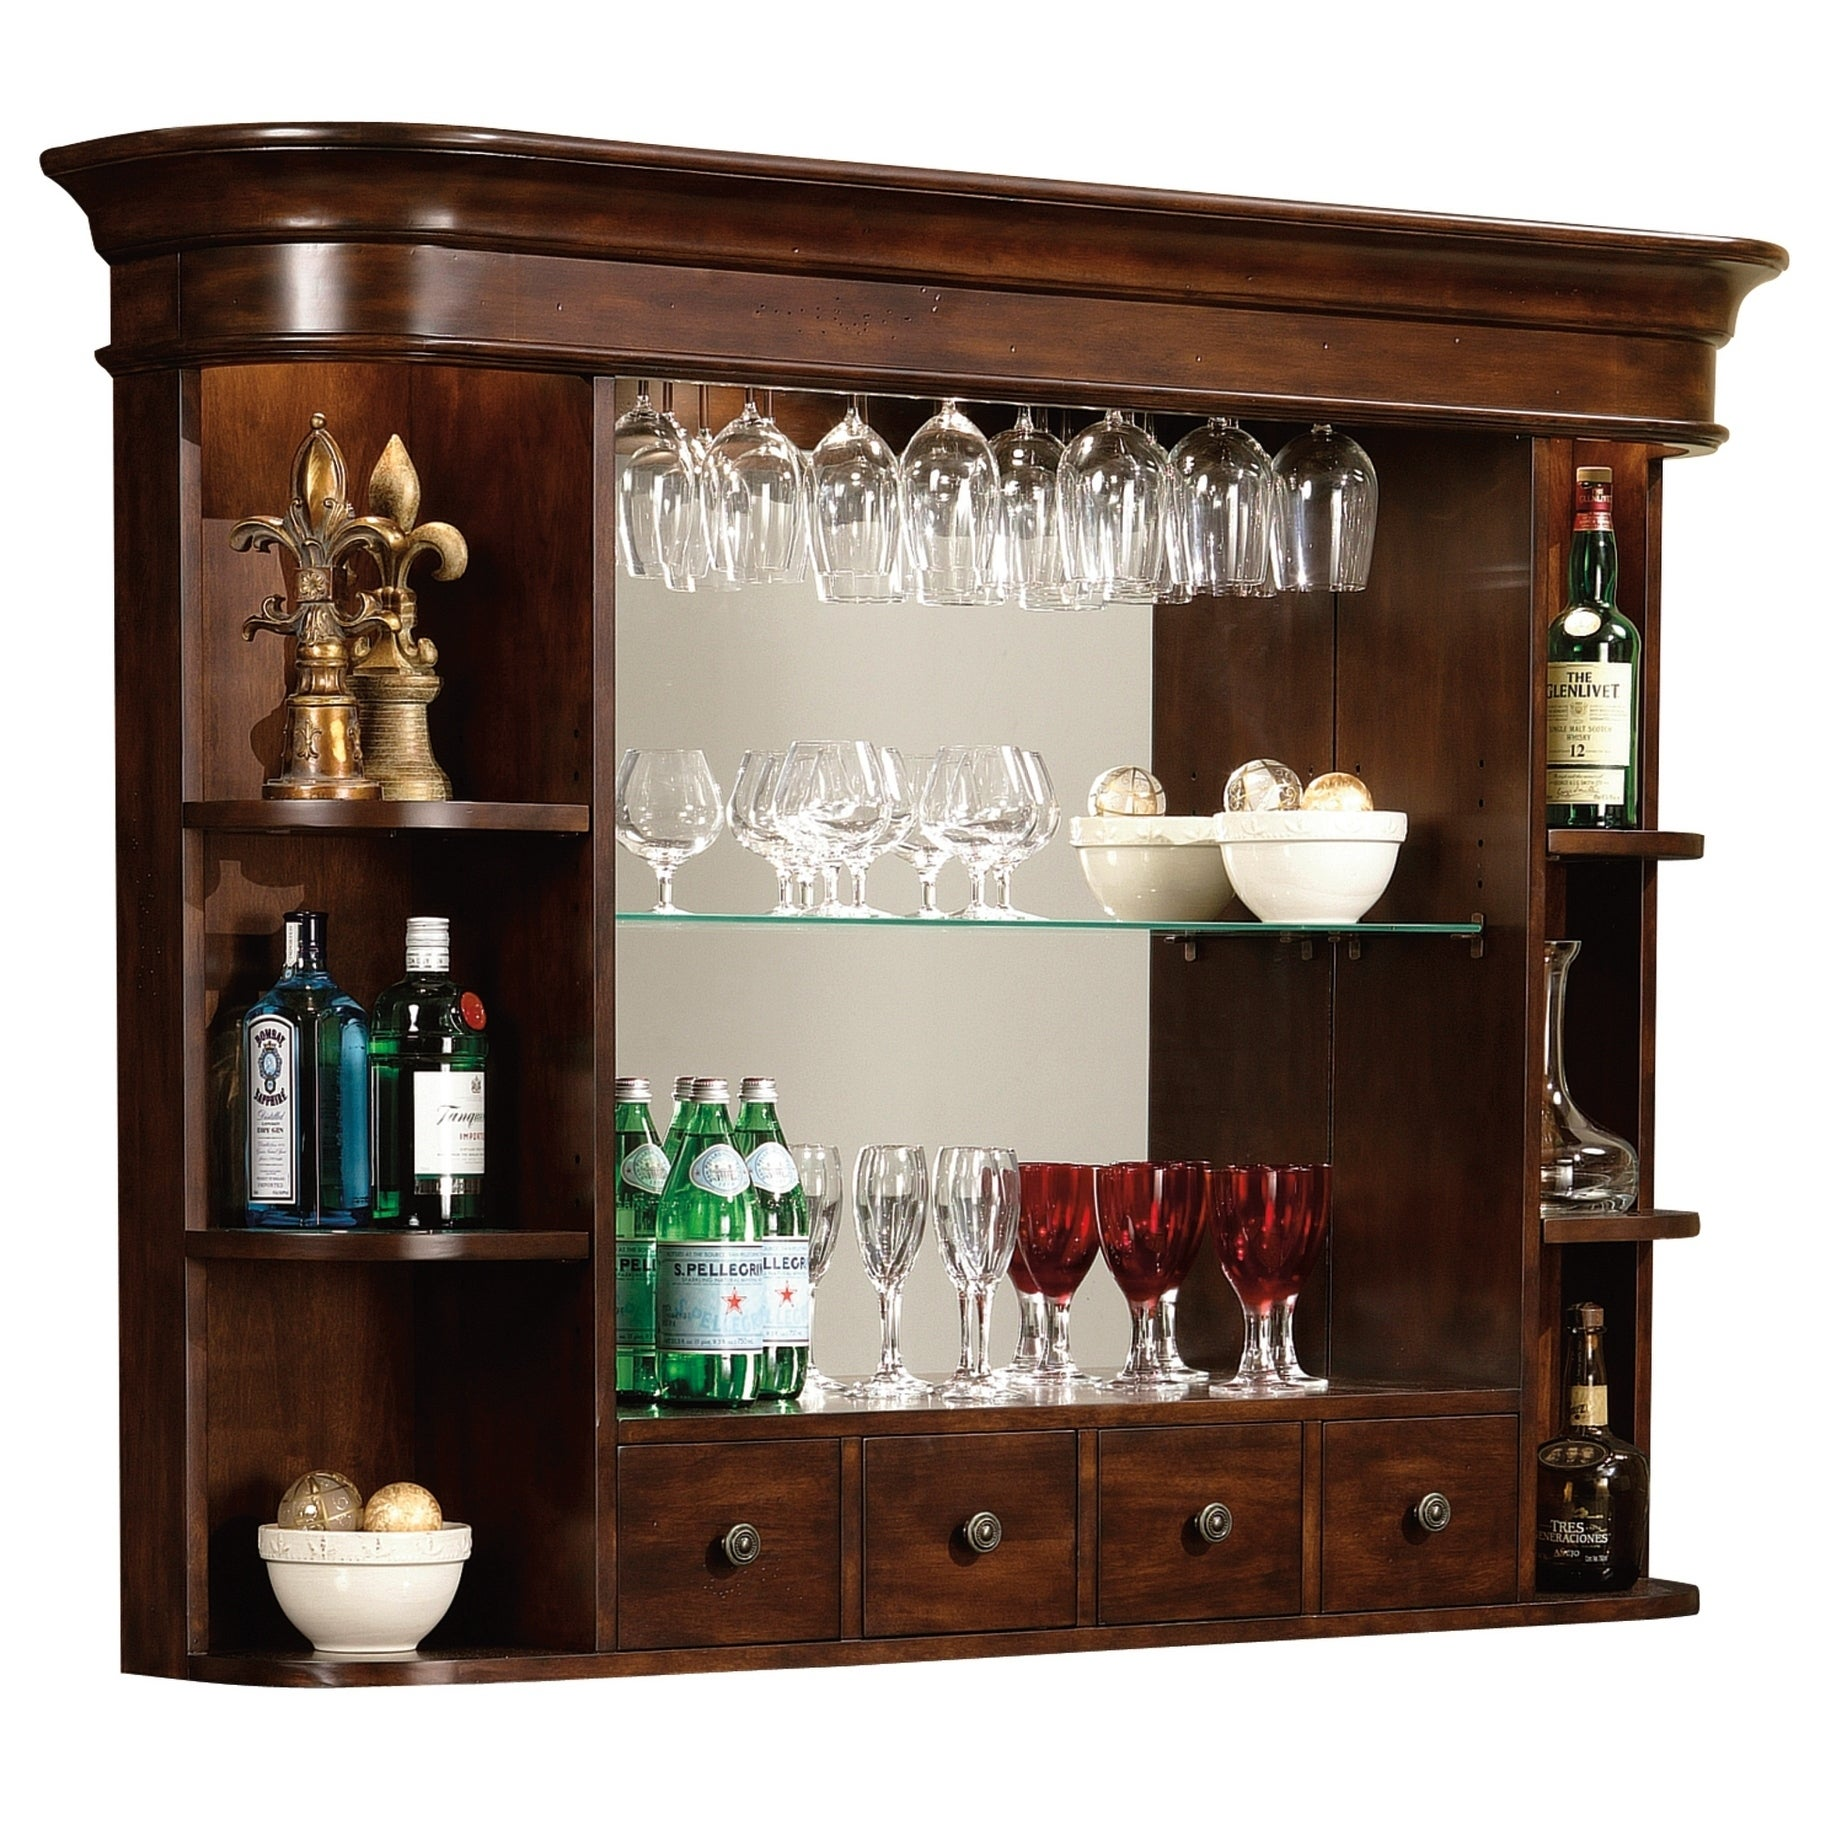 Shop Howard Miller Niagara Hutch Vintage Liquor Or Wine Display Shelves  With Mirrored Back   Free Shipping Today   Overstock.com   23439245